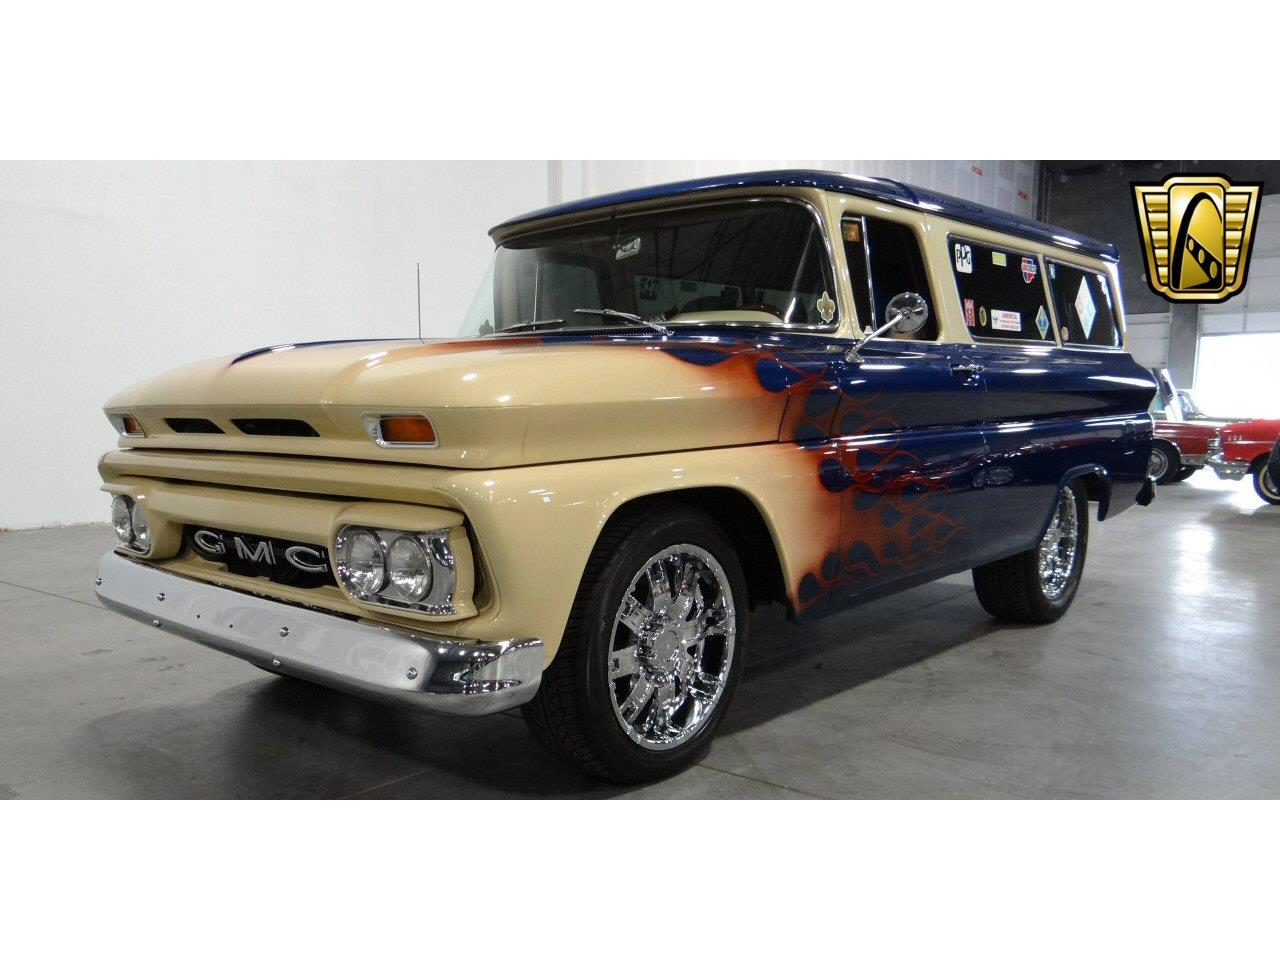 1961 Gmc Suburban For Sale The Car Chevy 4x4 Classiccars Com Cc 959853